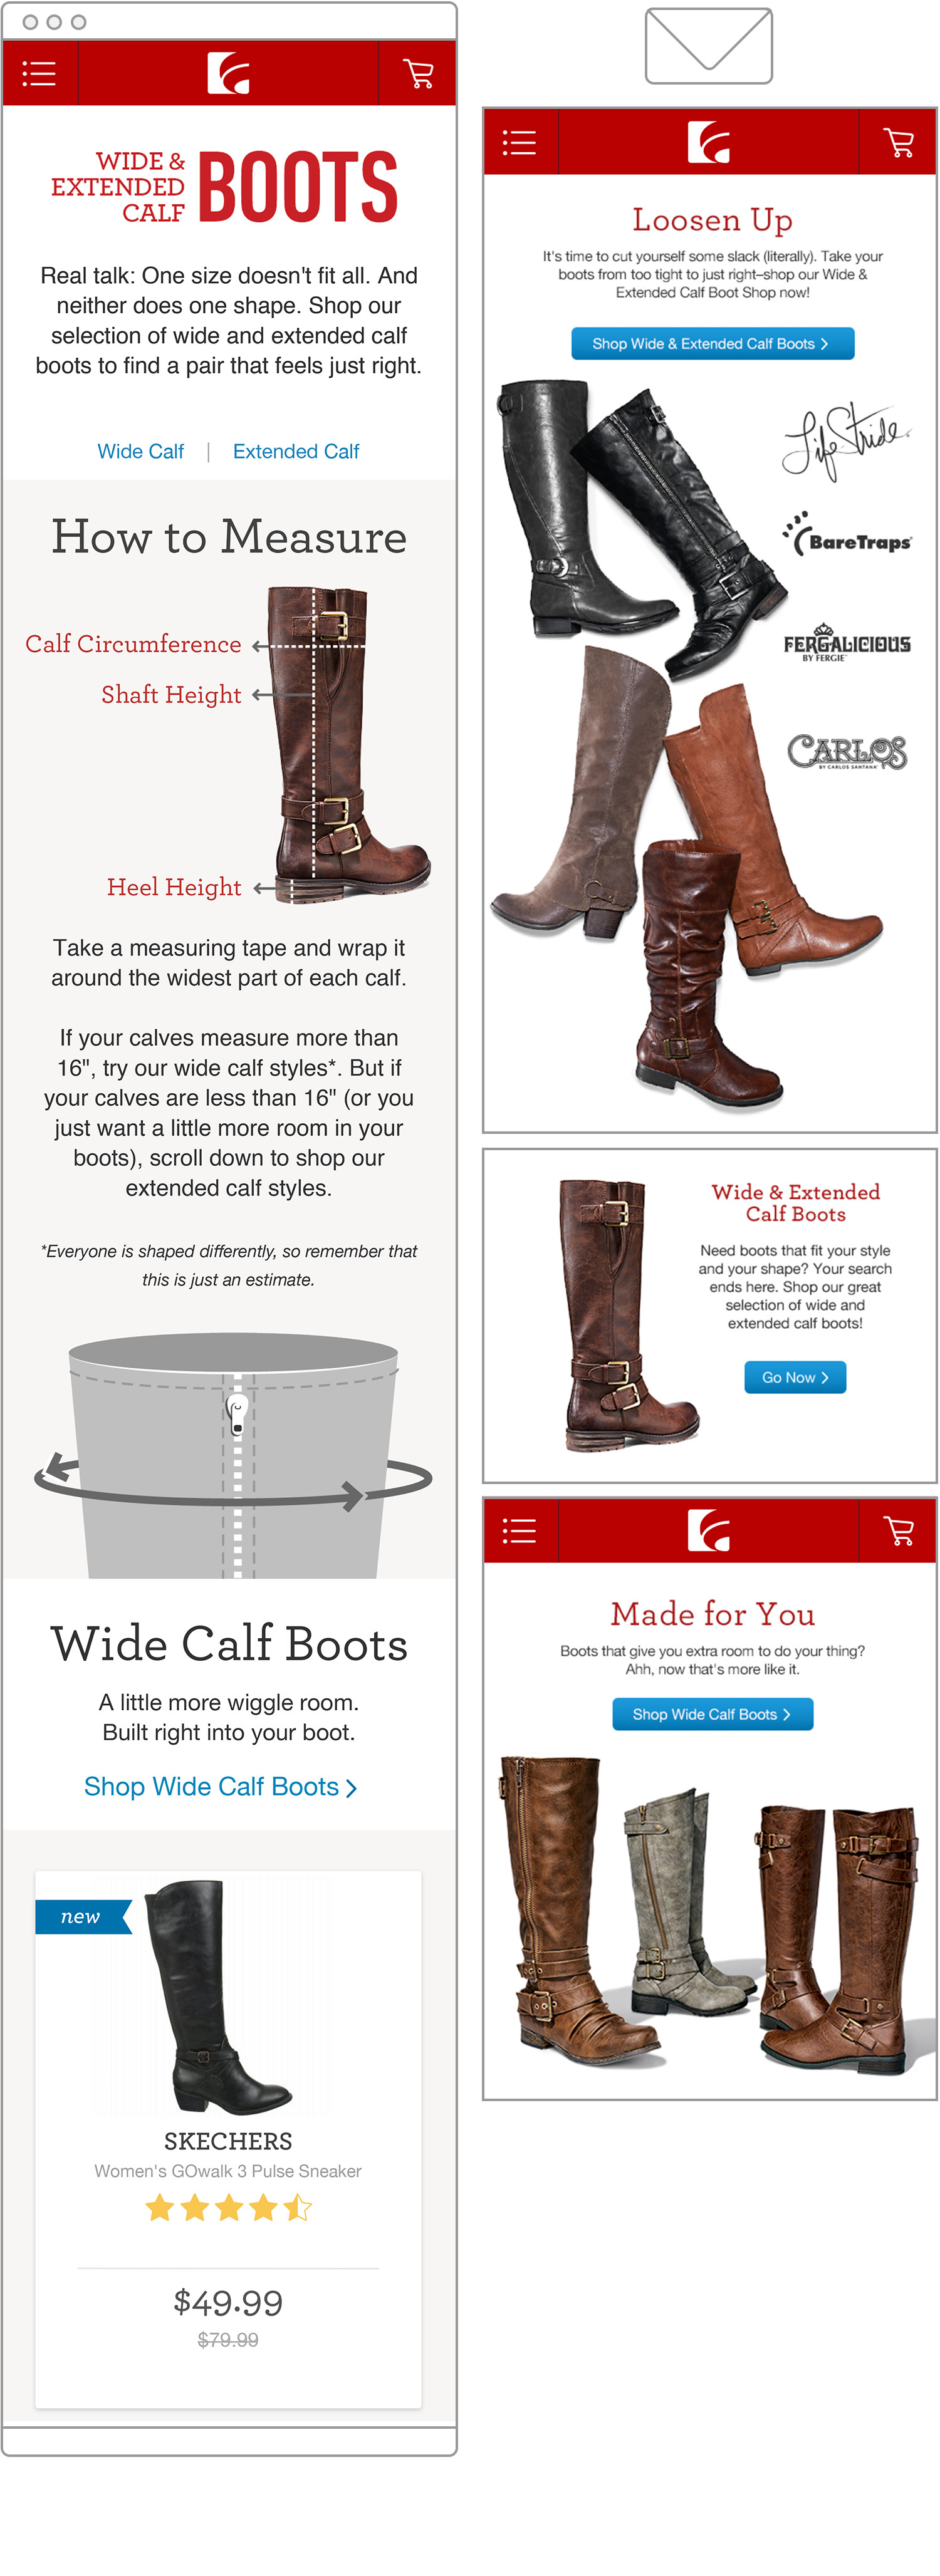 WideCalf_Promo_Mobile_Email.jpg